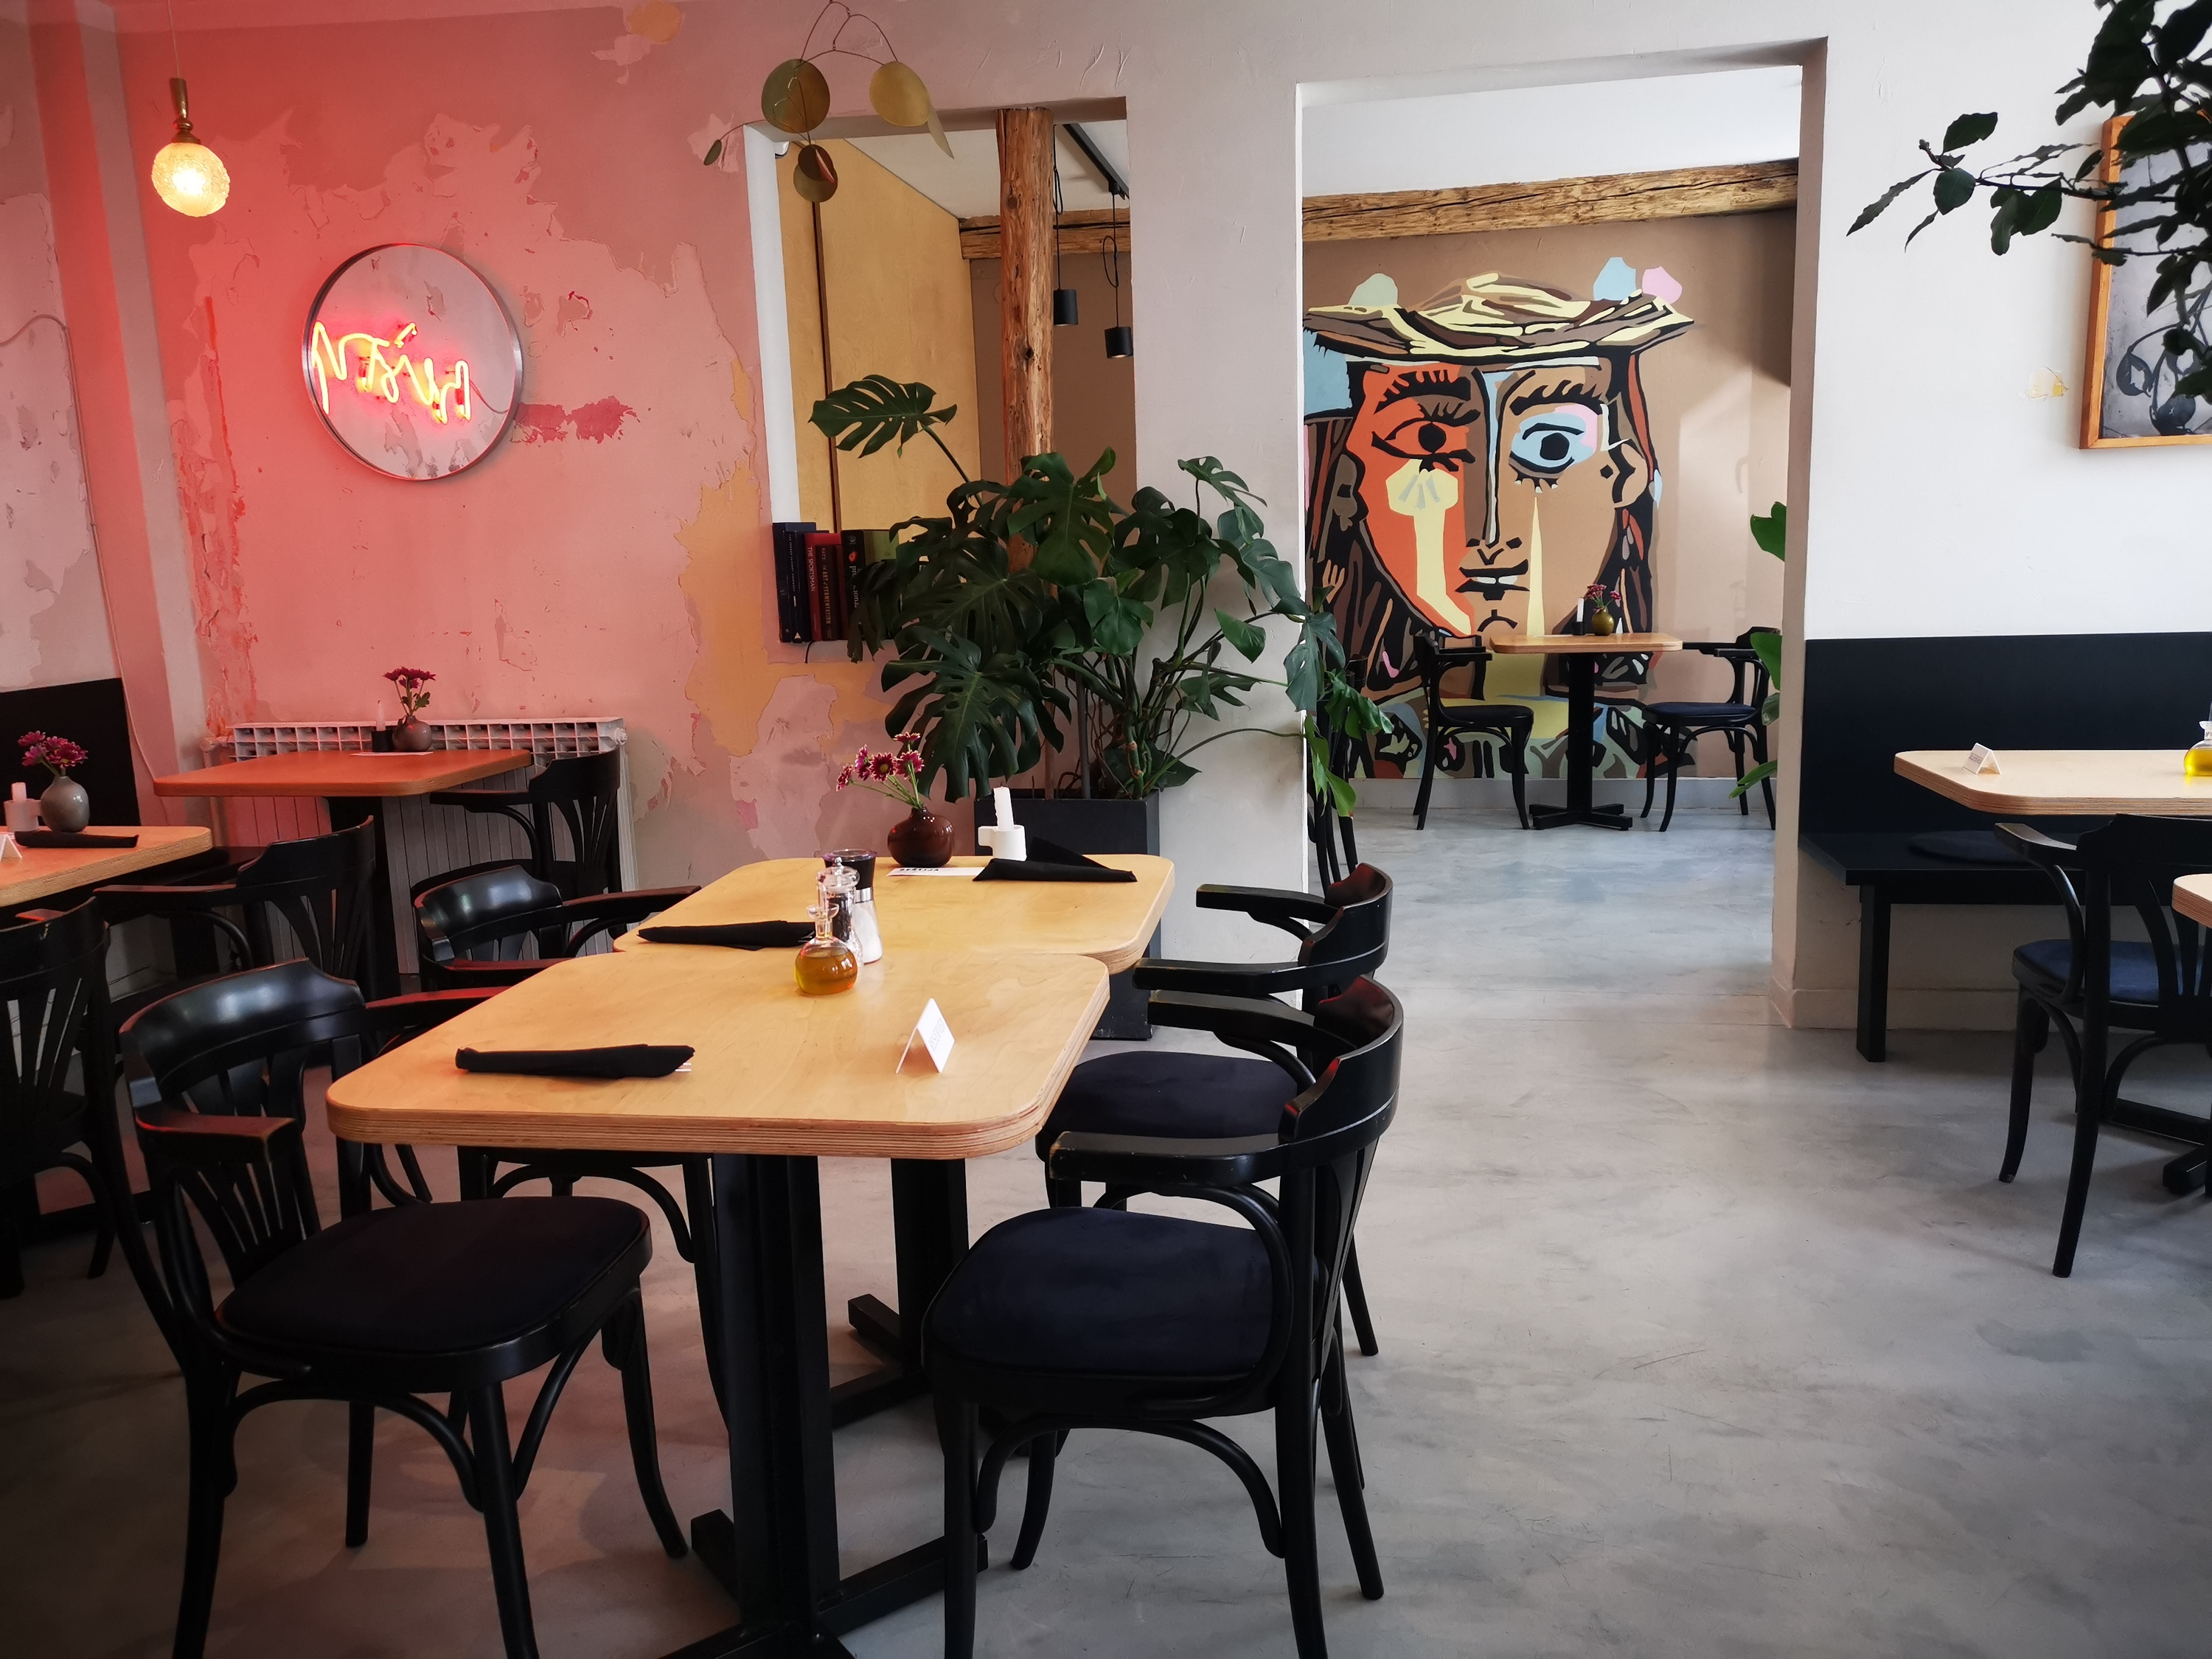 Introducing one of the best restaurants in Zagreb: Beštija